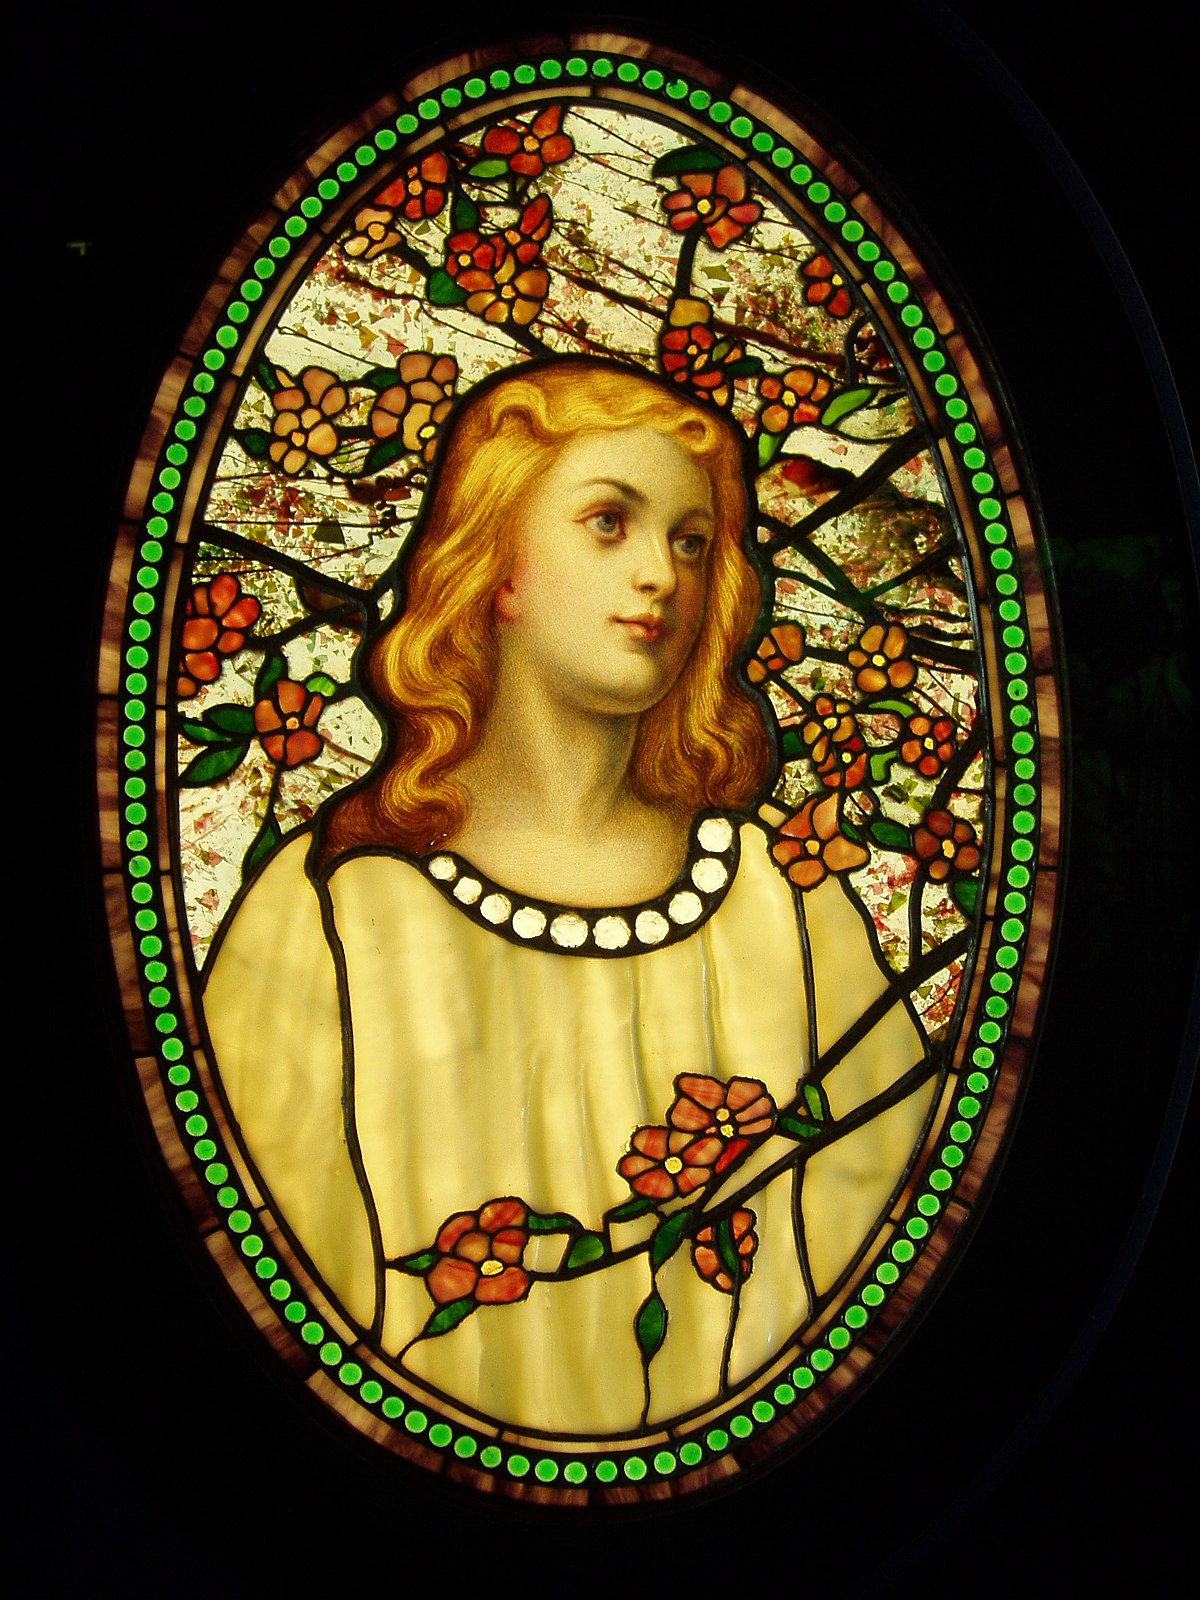 Tiffany glass - Wikipedia